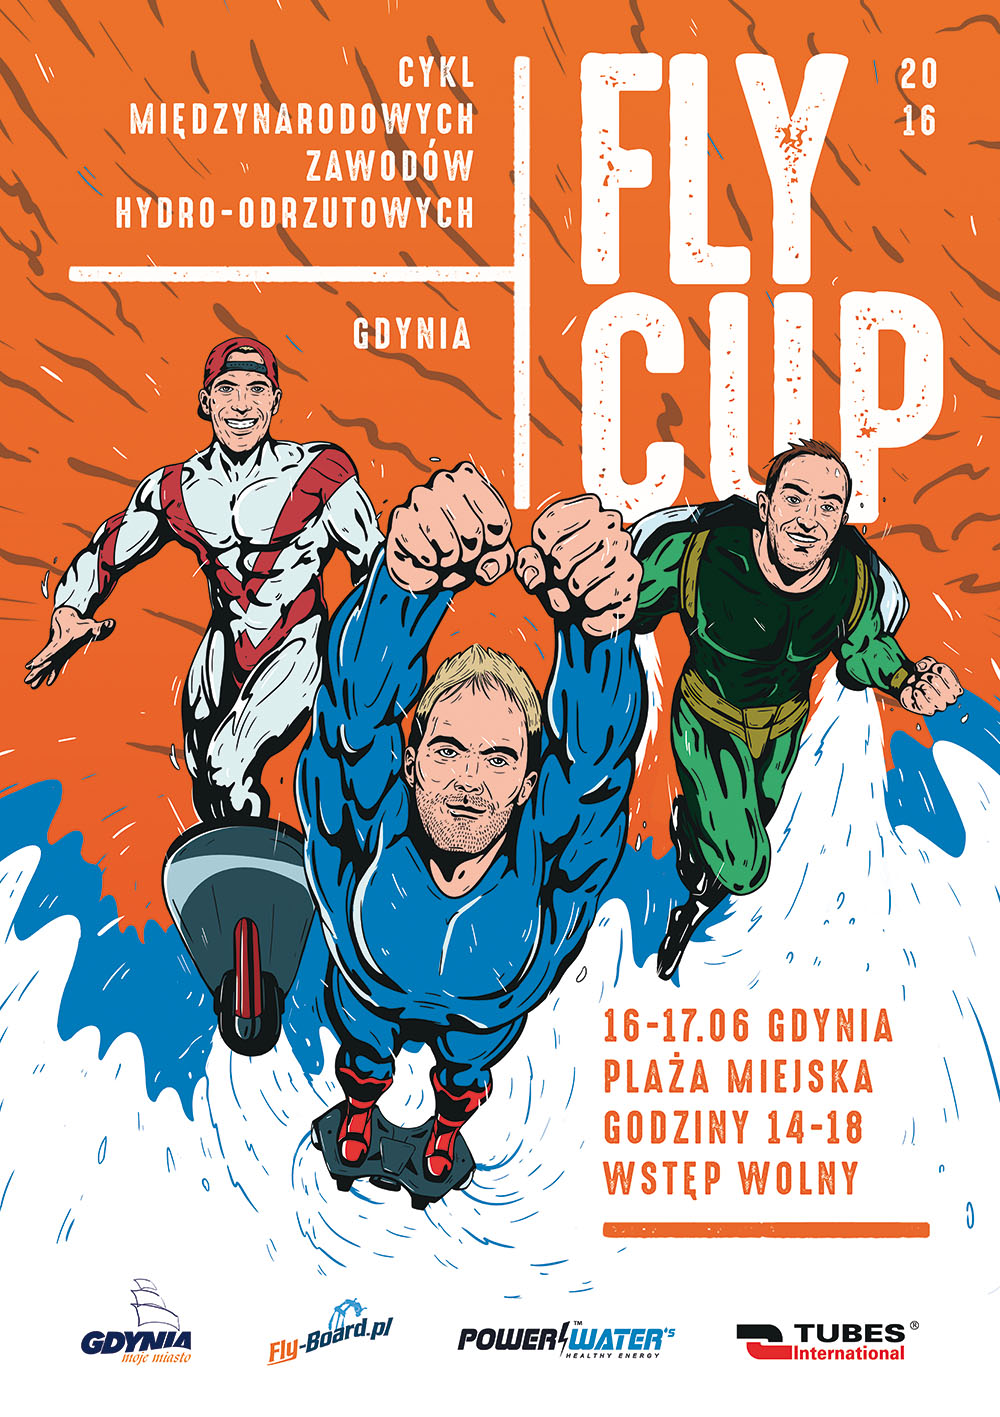 Plakat Gdynia FLYCUP